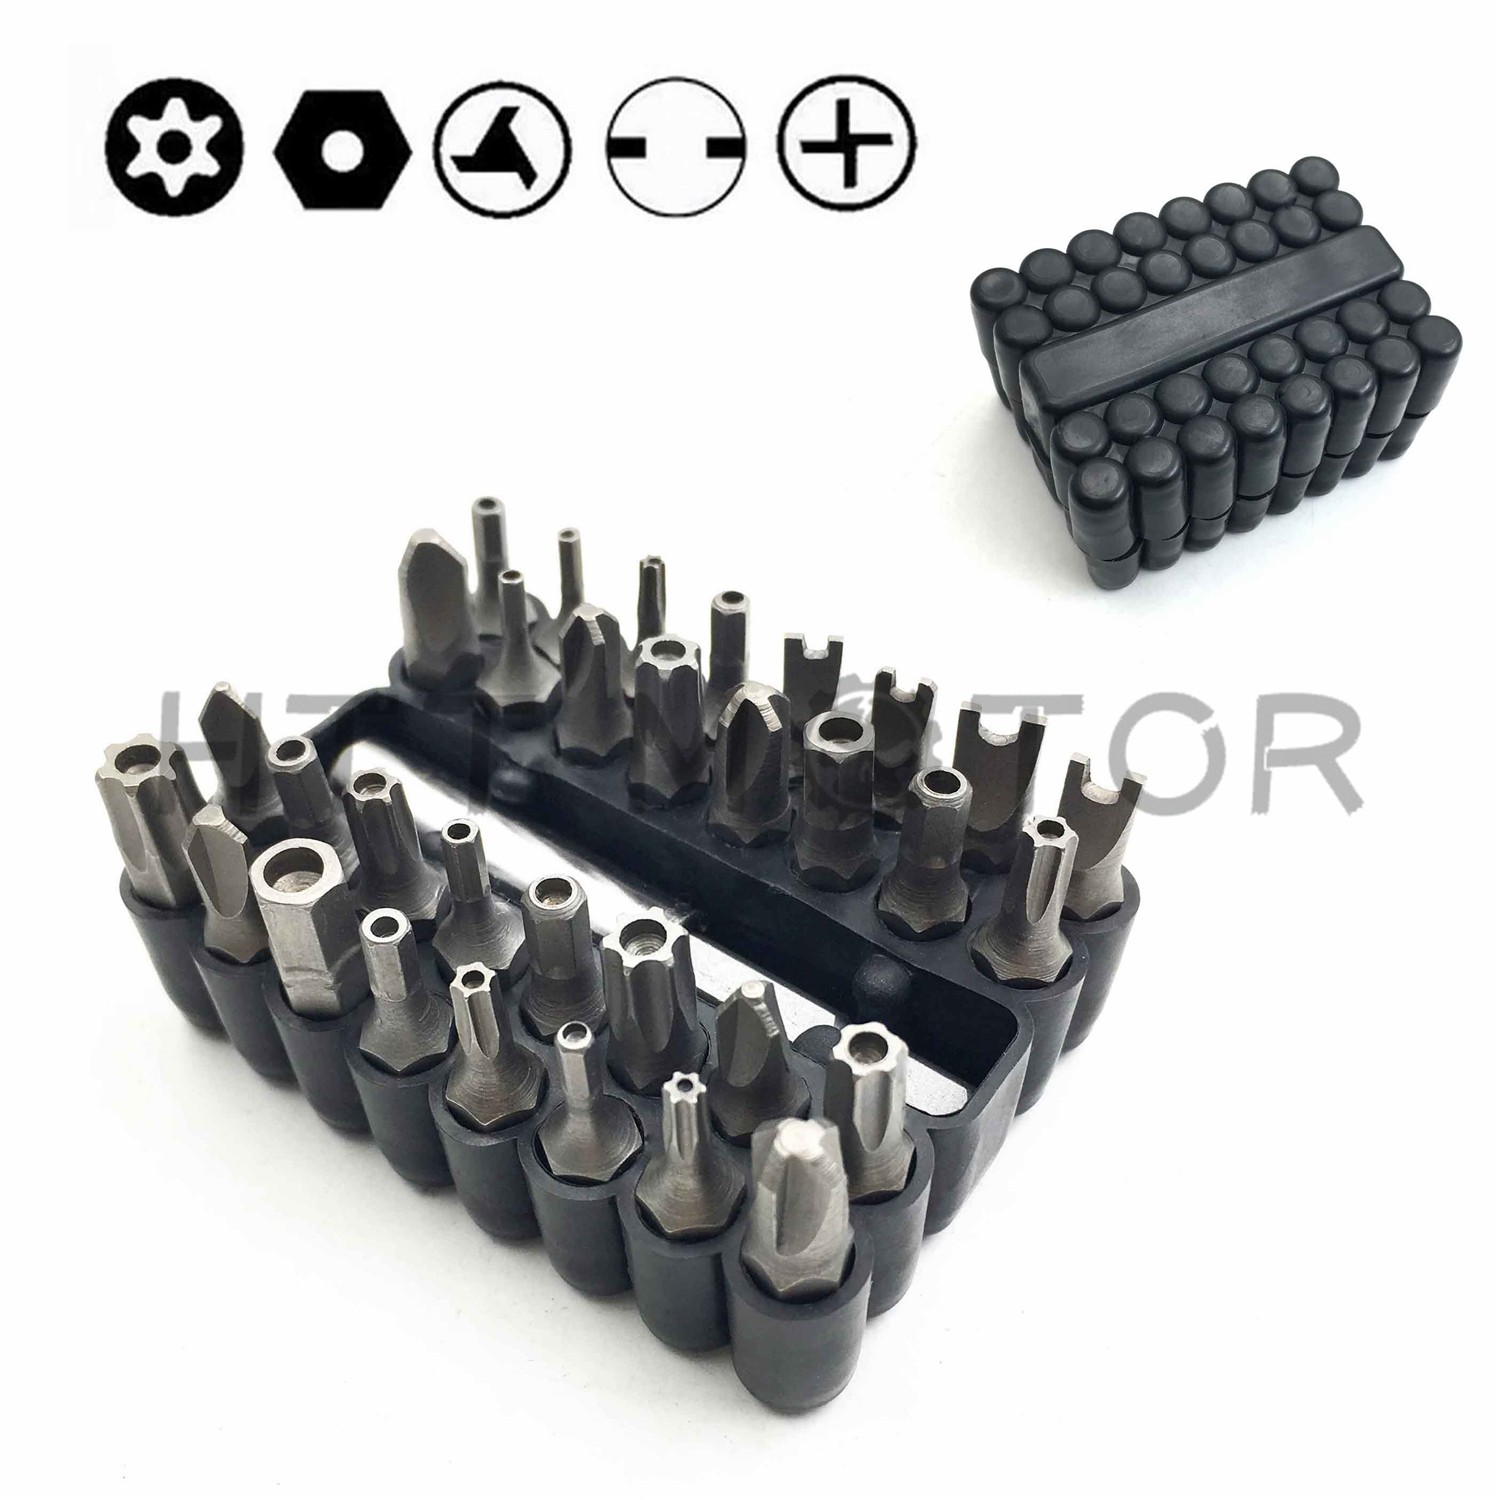 HTT Motorcycle Tamper Proof 33Pc Security Bit Set Phillips Torx Hex Star Spanner Screwdriver